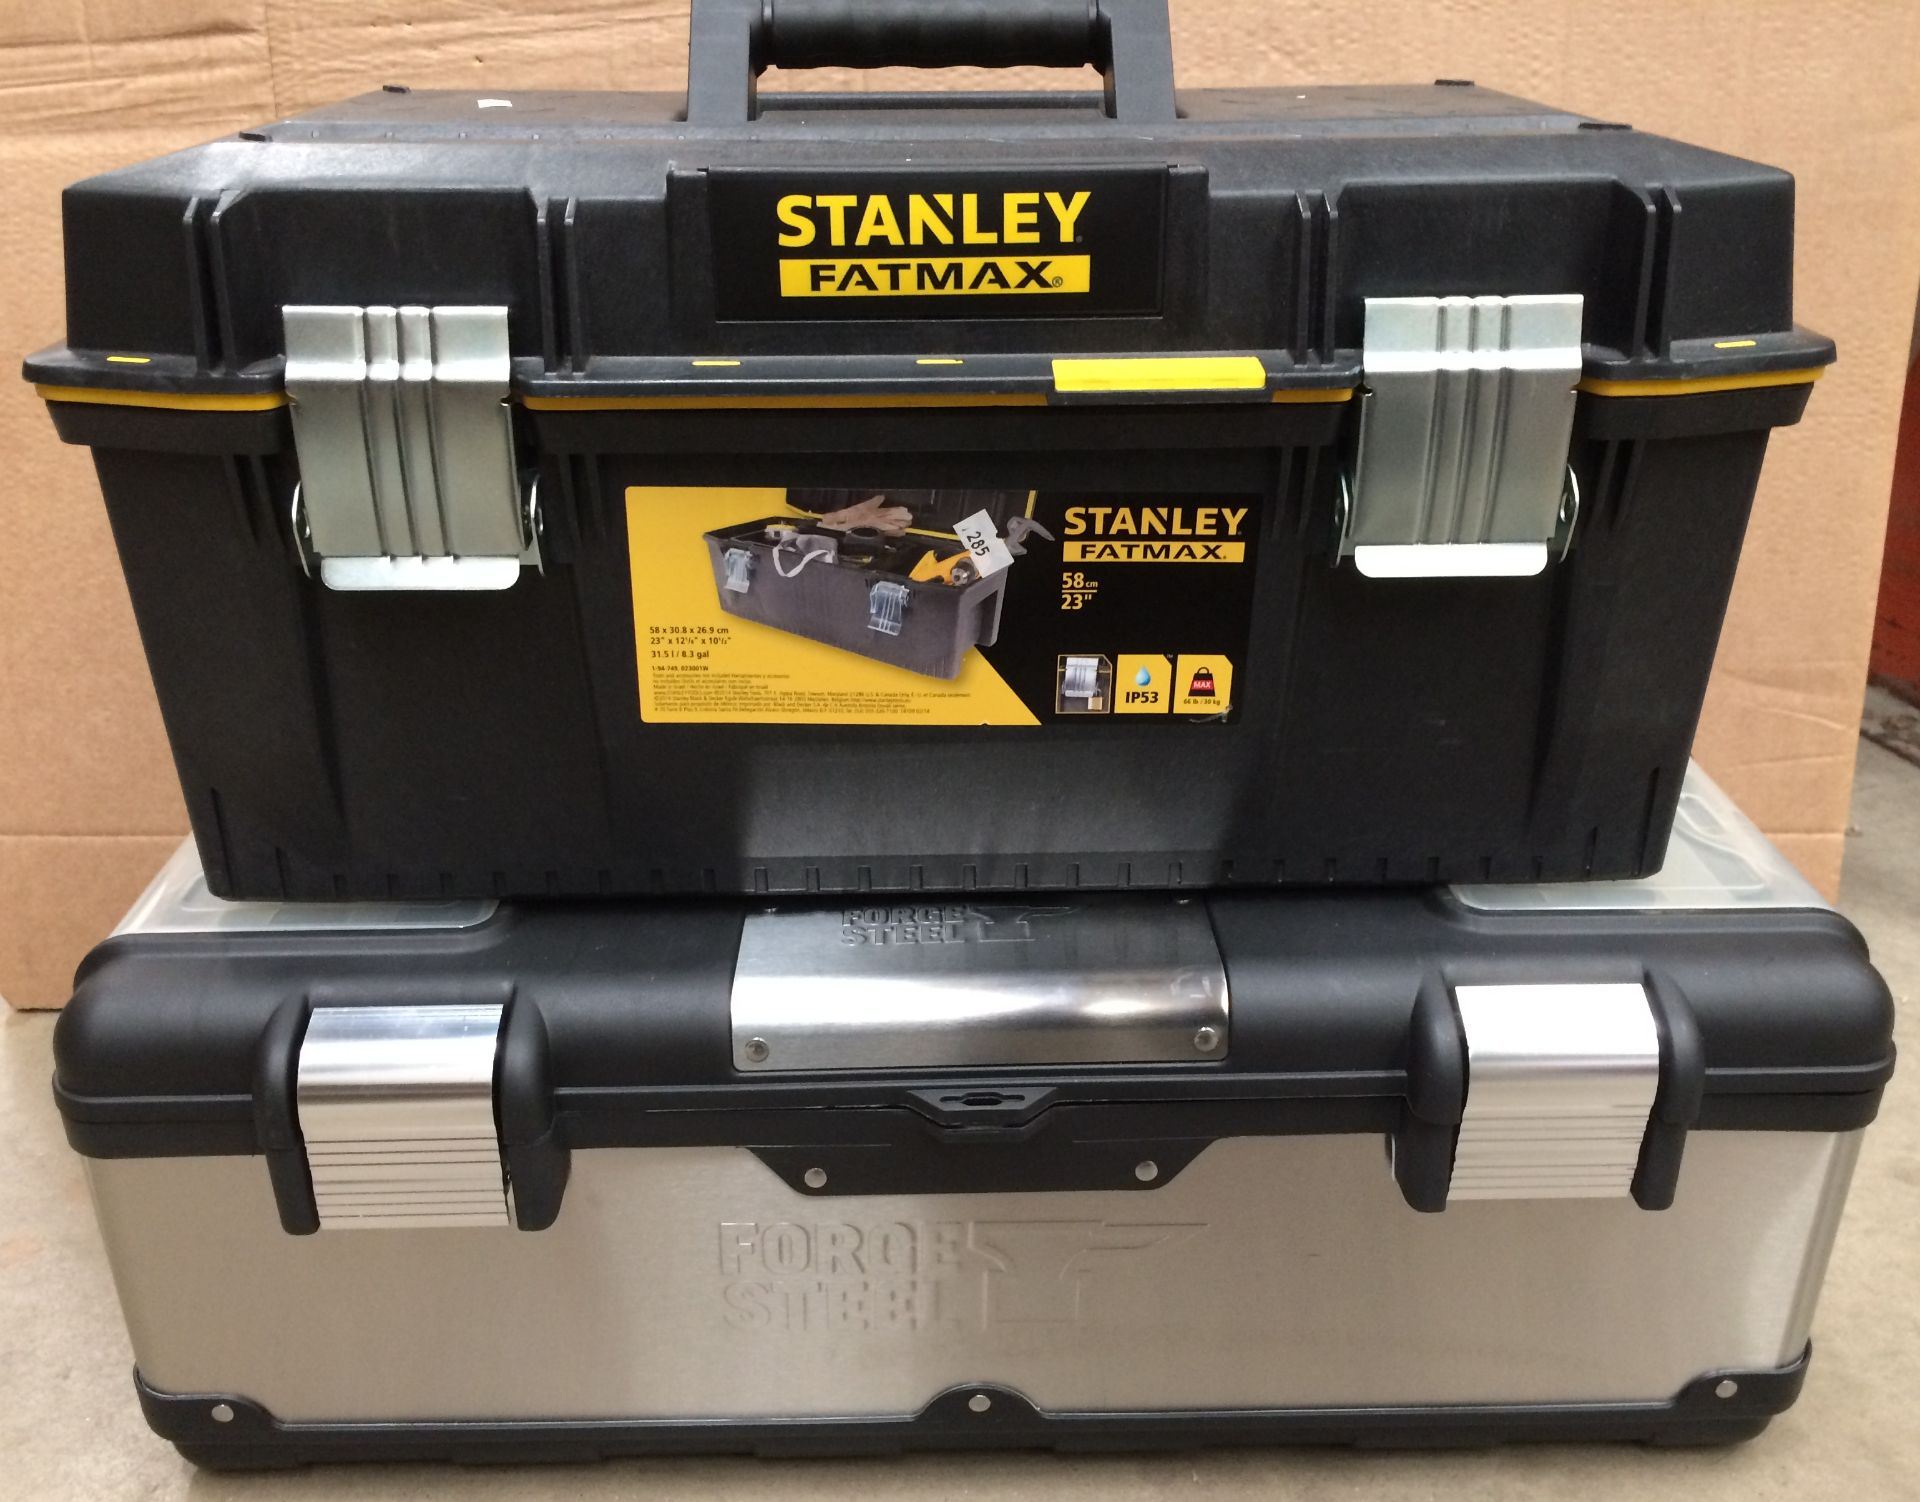 Two assorted tool boxes by Stanley Fat Max (58cm) and Forge Steel with a quantity of assorted hand